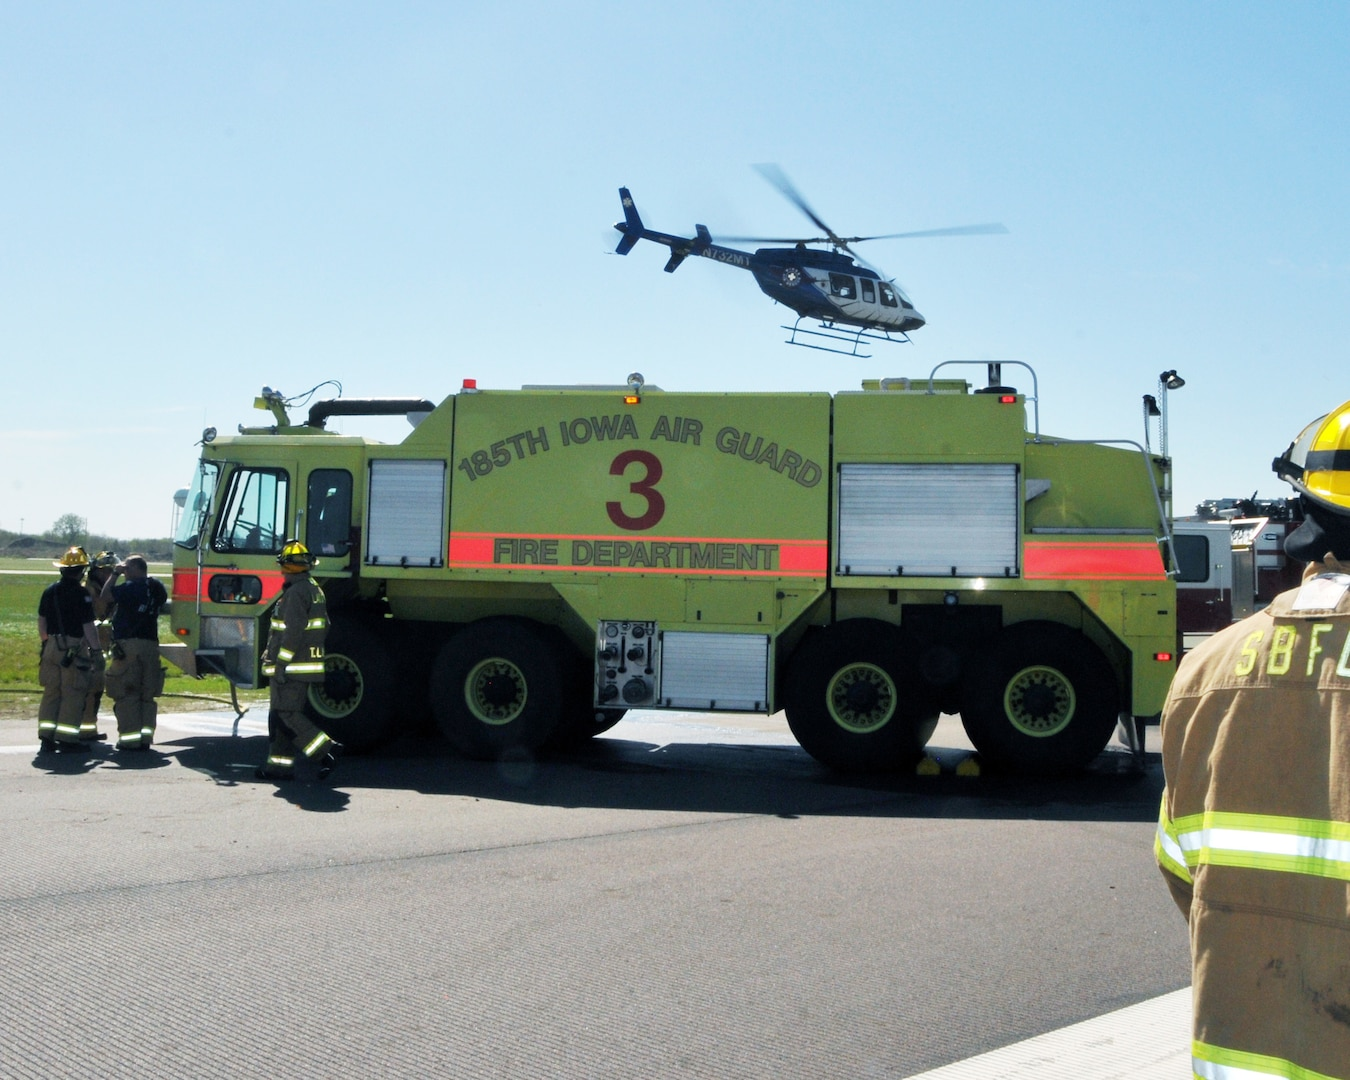 A helicopter from Wings Air Rescue arrives at Sioux Gateway Airport Col. Bud Day Field to pick up a load of simulated casualties to deliver to a hospital during a Federal Aviation Administration mass casualty exercise at the airport in Sioux City, Iowa, May 1, 2021. The Iowa Air National Guard's 185th Air Refueling Wing participated in the exercise.